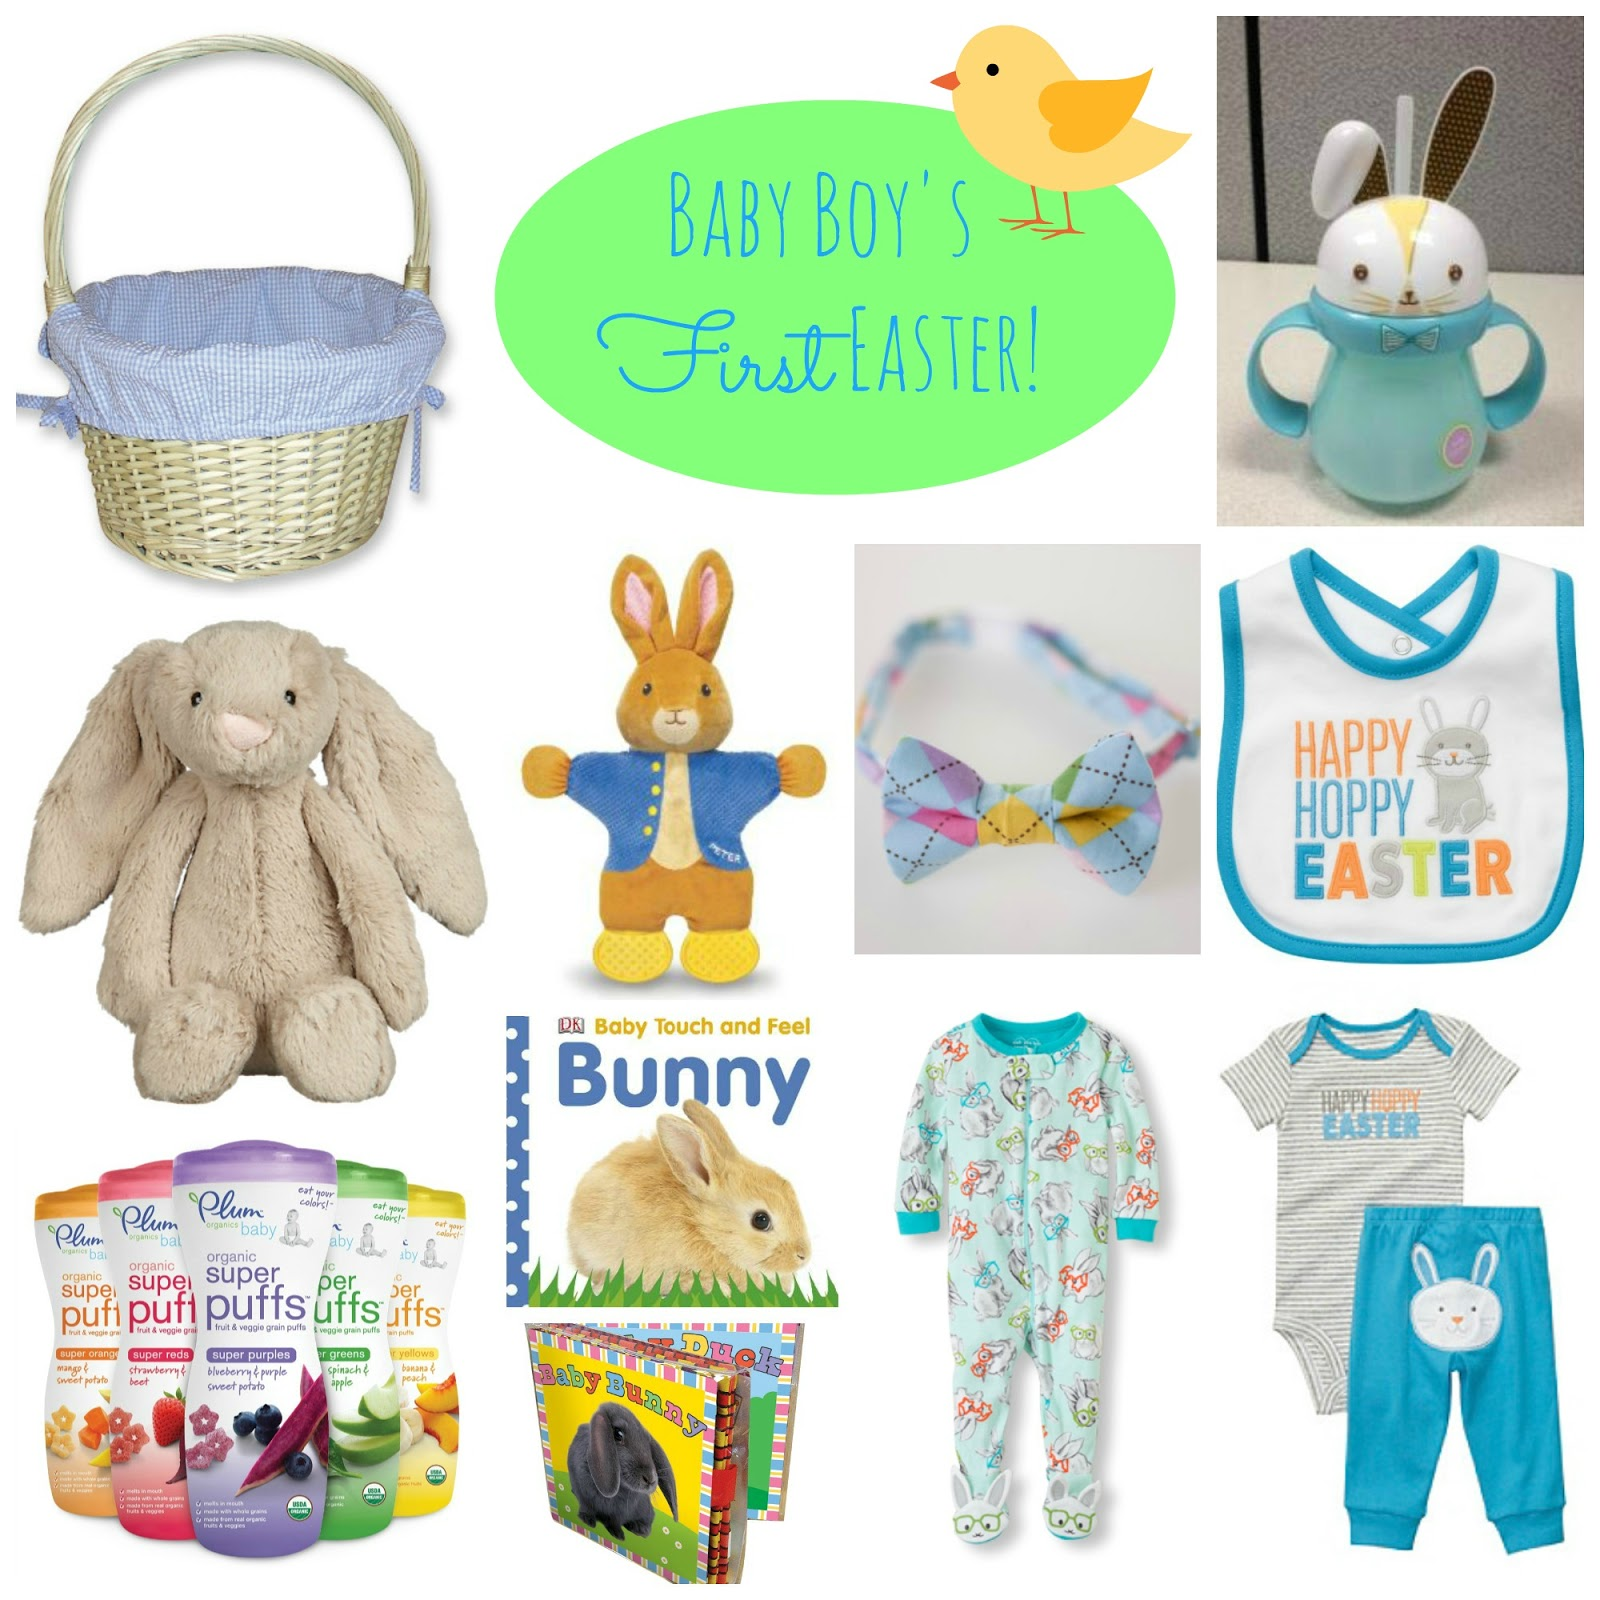 Simple suburbia babys first easter basket ideas it took me a while to decide what to put in there so i decided to share some ideas for boys and girls negle Choice Image